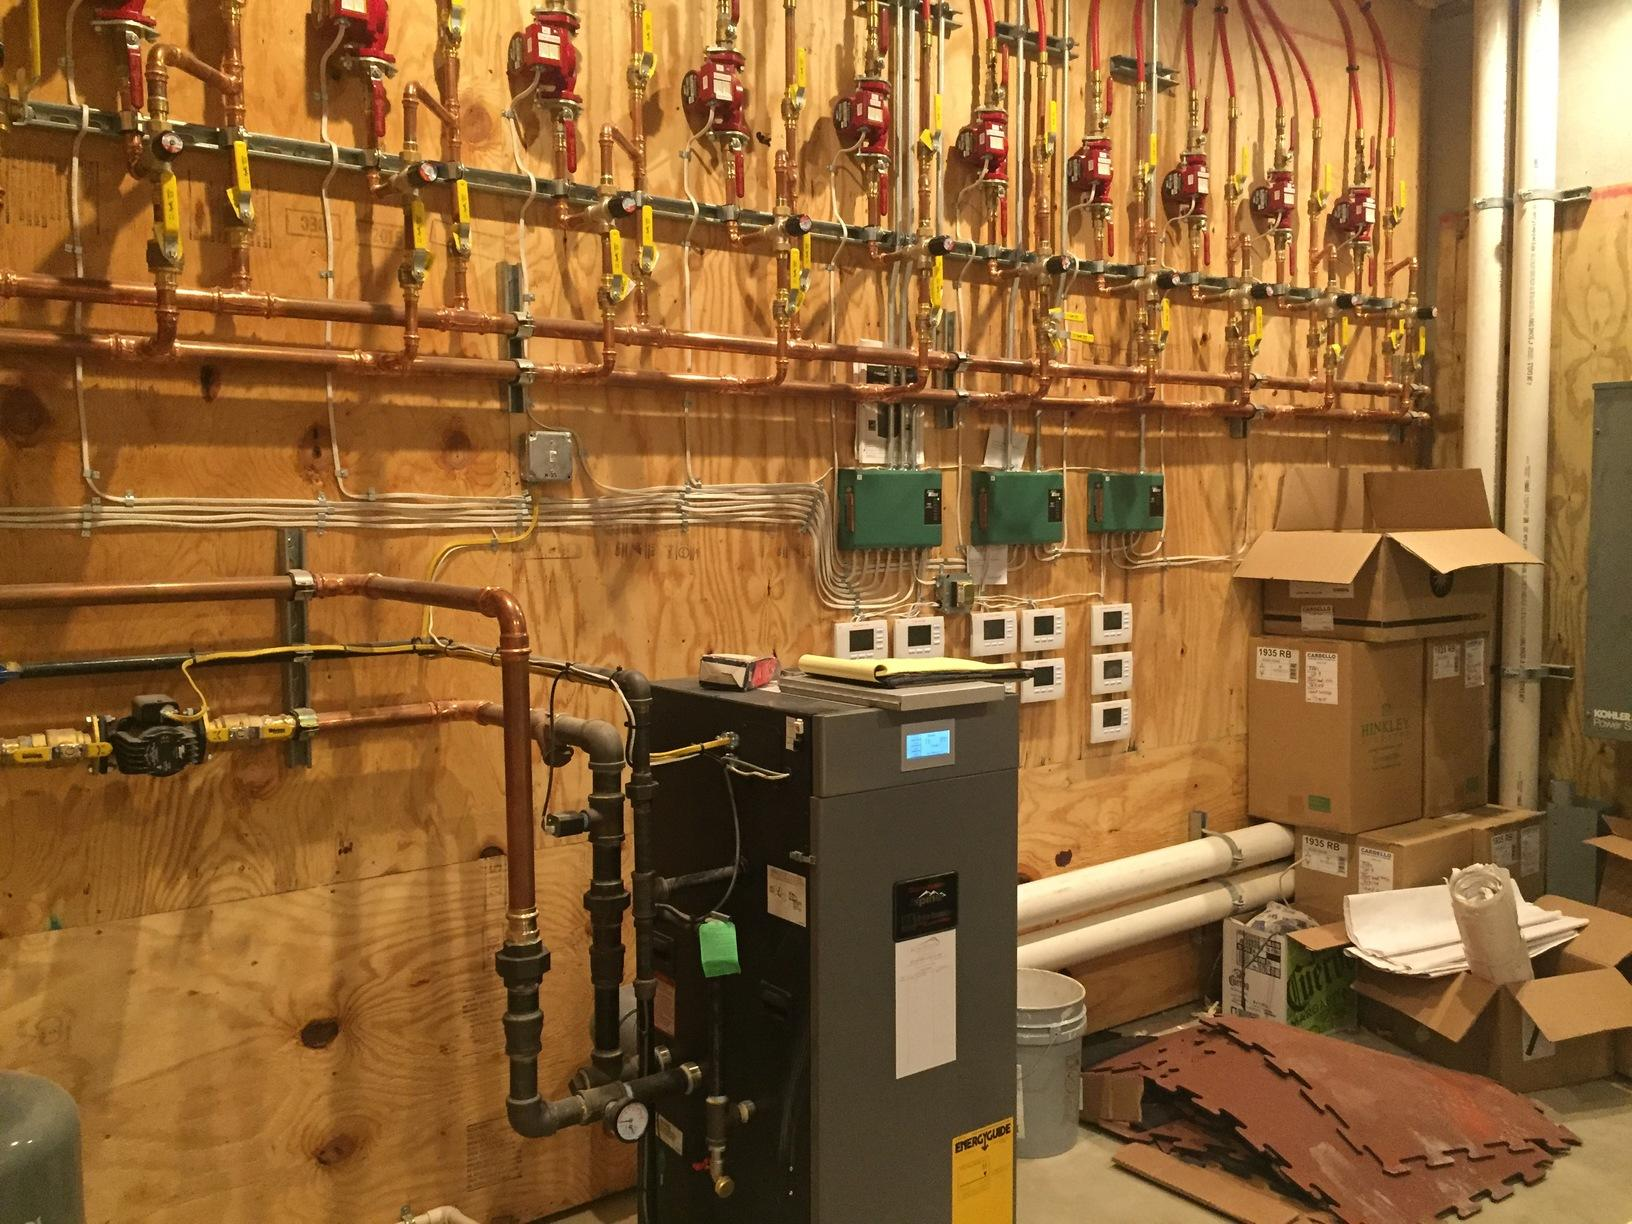 Zoning system for infloor radiant heat, Gibsonia PA